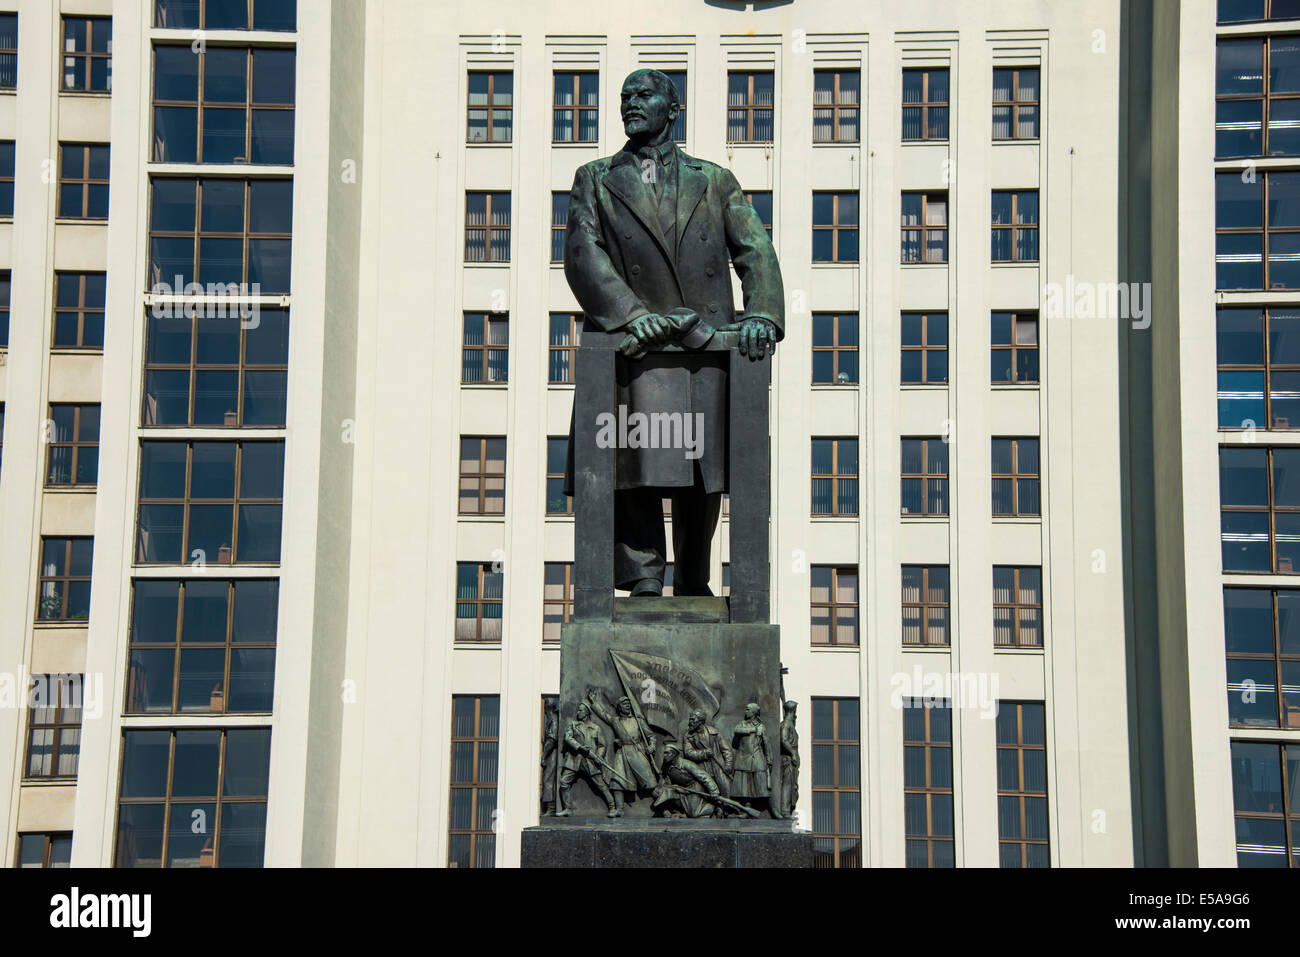 Lenin statue in front of the House of Representatives of Belarus on Nezalezhnasti Independence Square, Minsk, Belarus - Stock Image